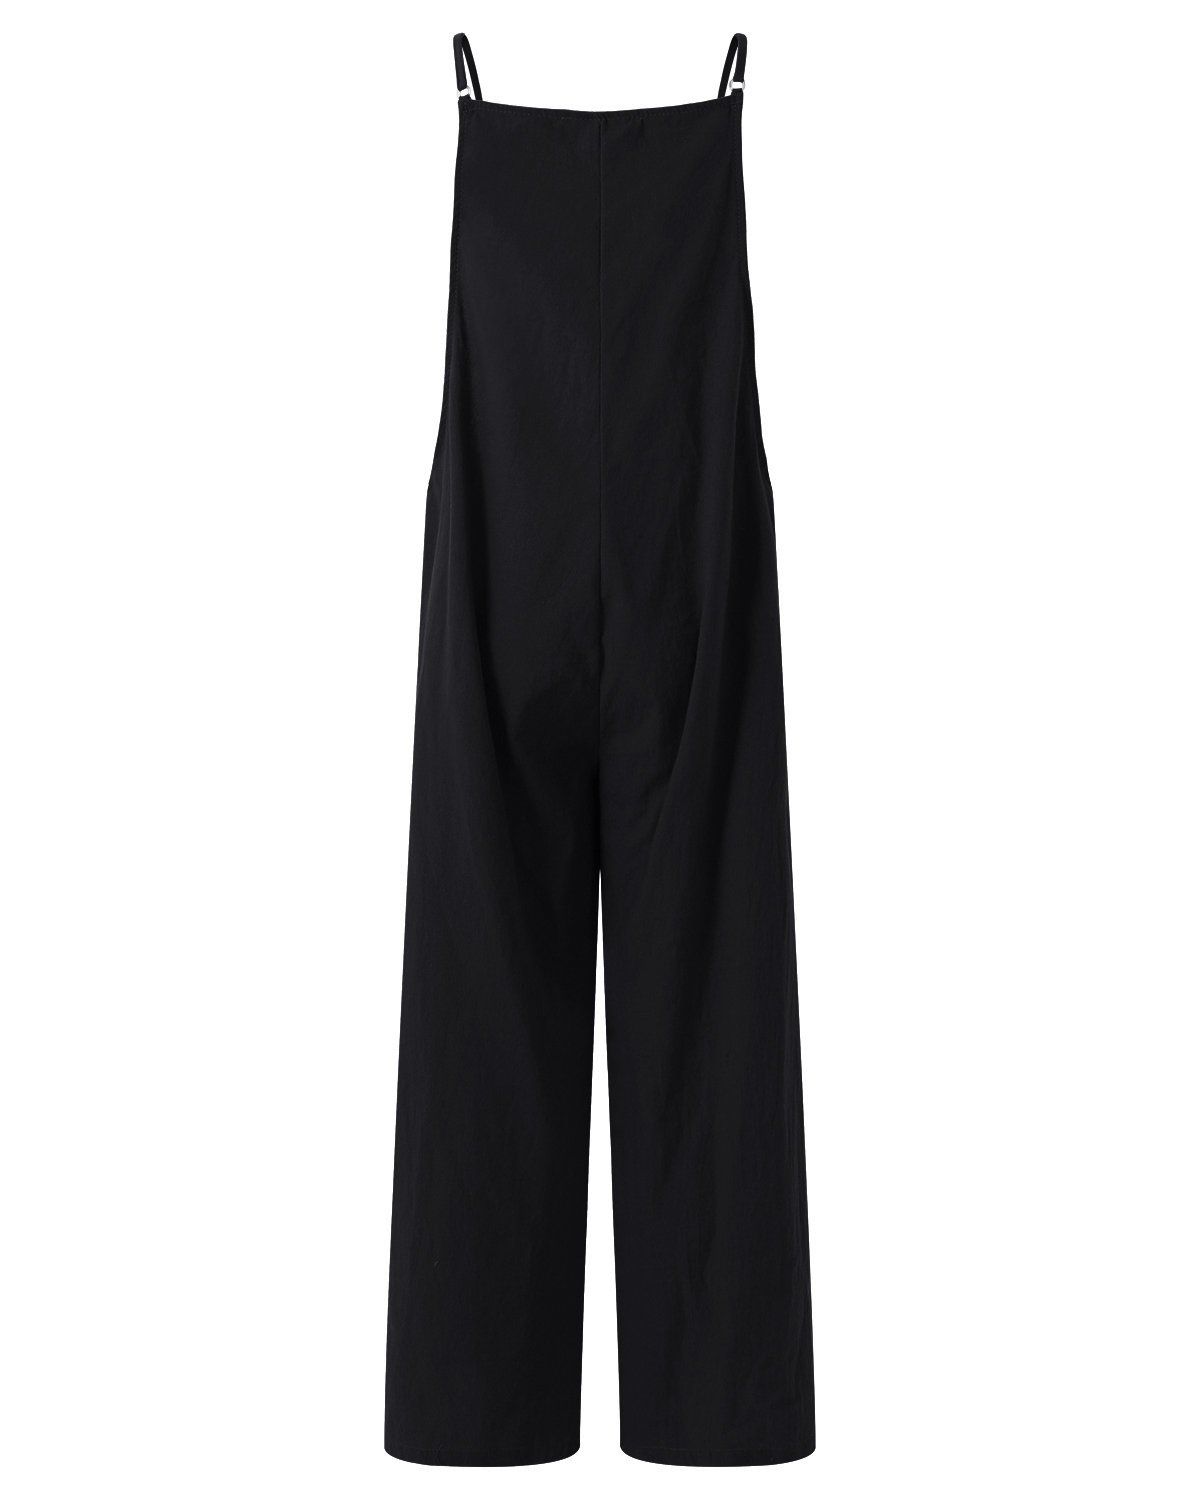 StyleDome Fashion Women Casual Loose Cotton Solid Jumpsuit Long Suspender Overalls Bib Pants Plus Size Romper Black Small by StyleDome (Image #3)